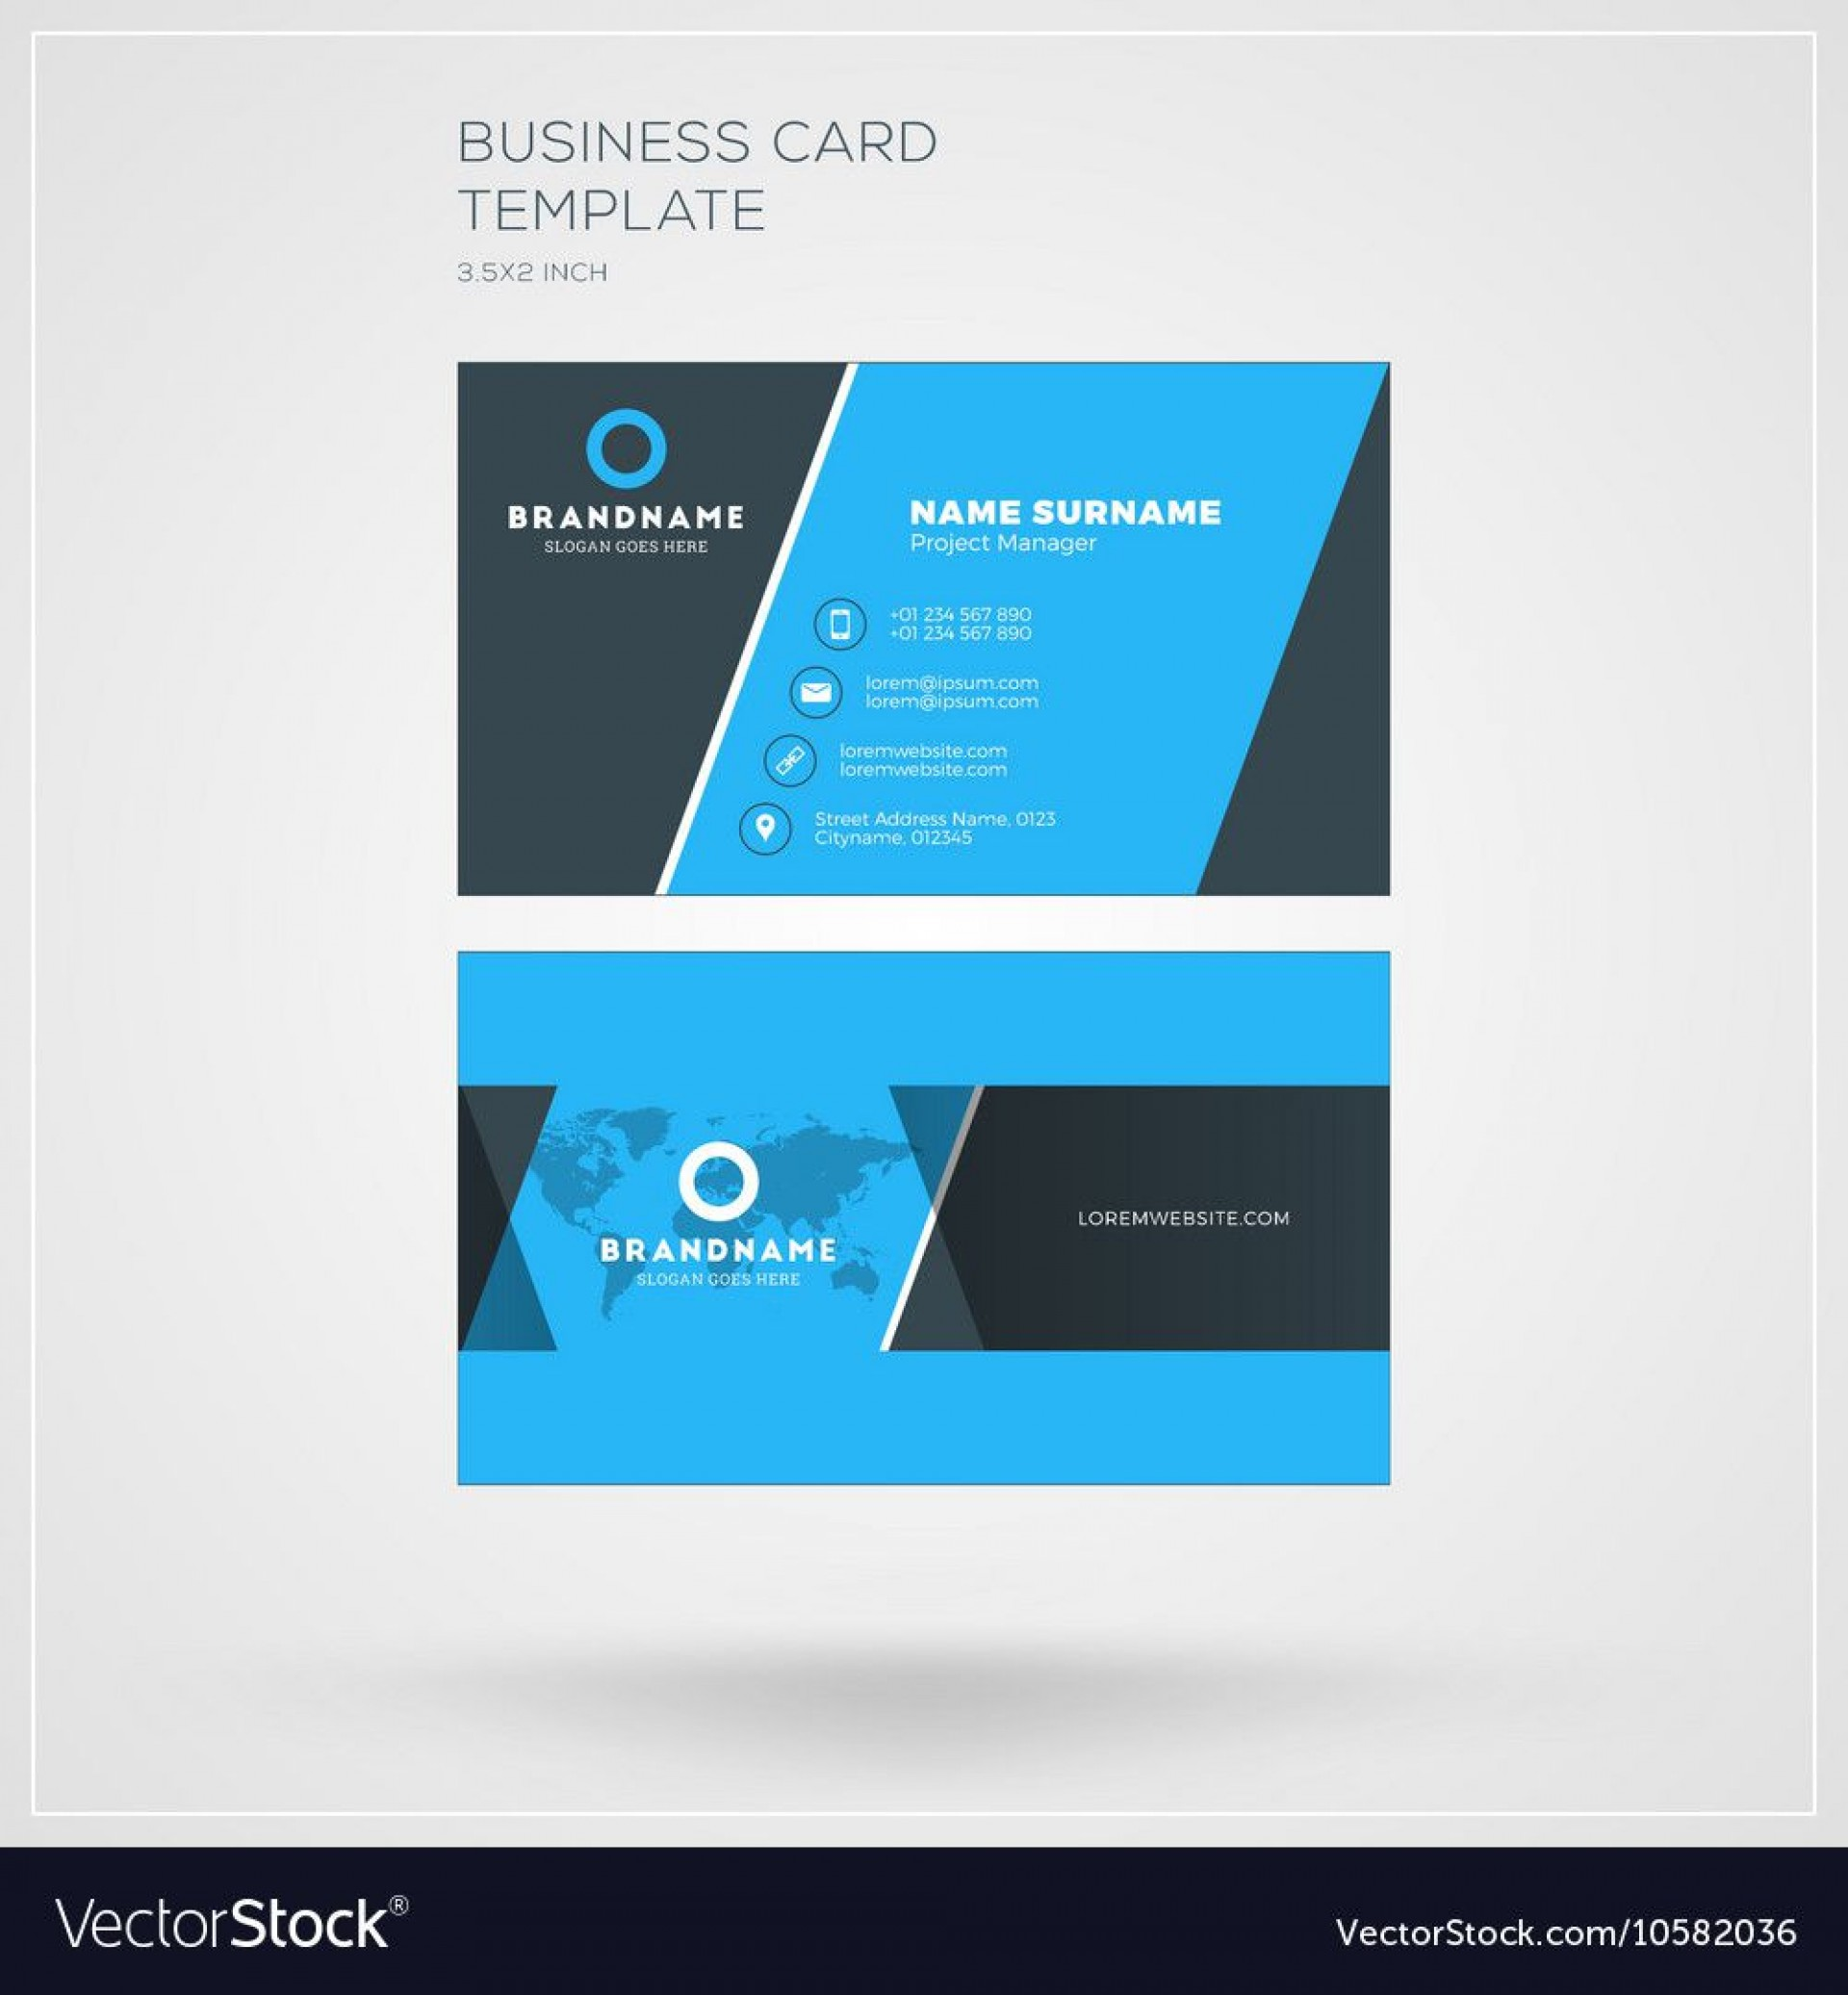 002 Sensational Personal Busines Card Template Image  Trainer Design Psd Fitnes1920